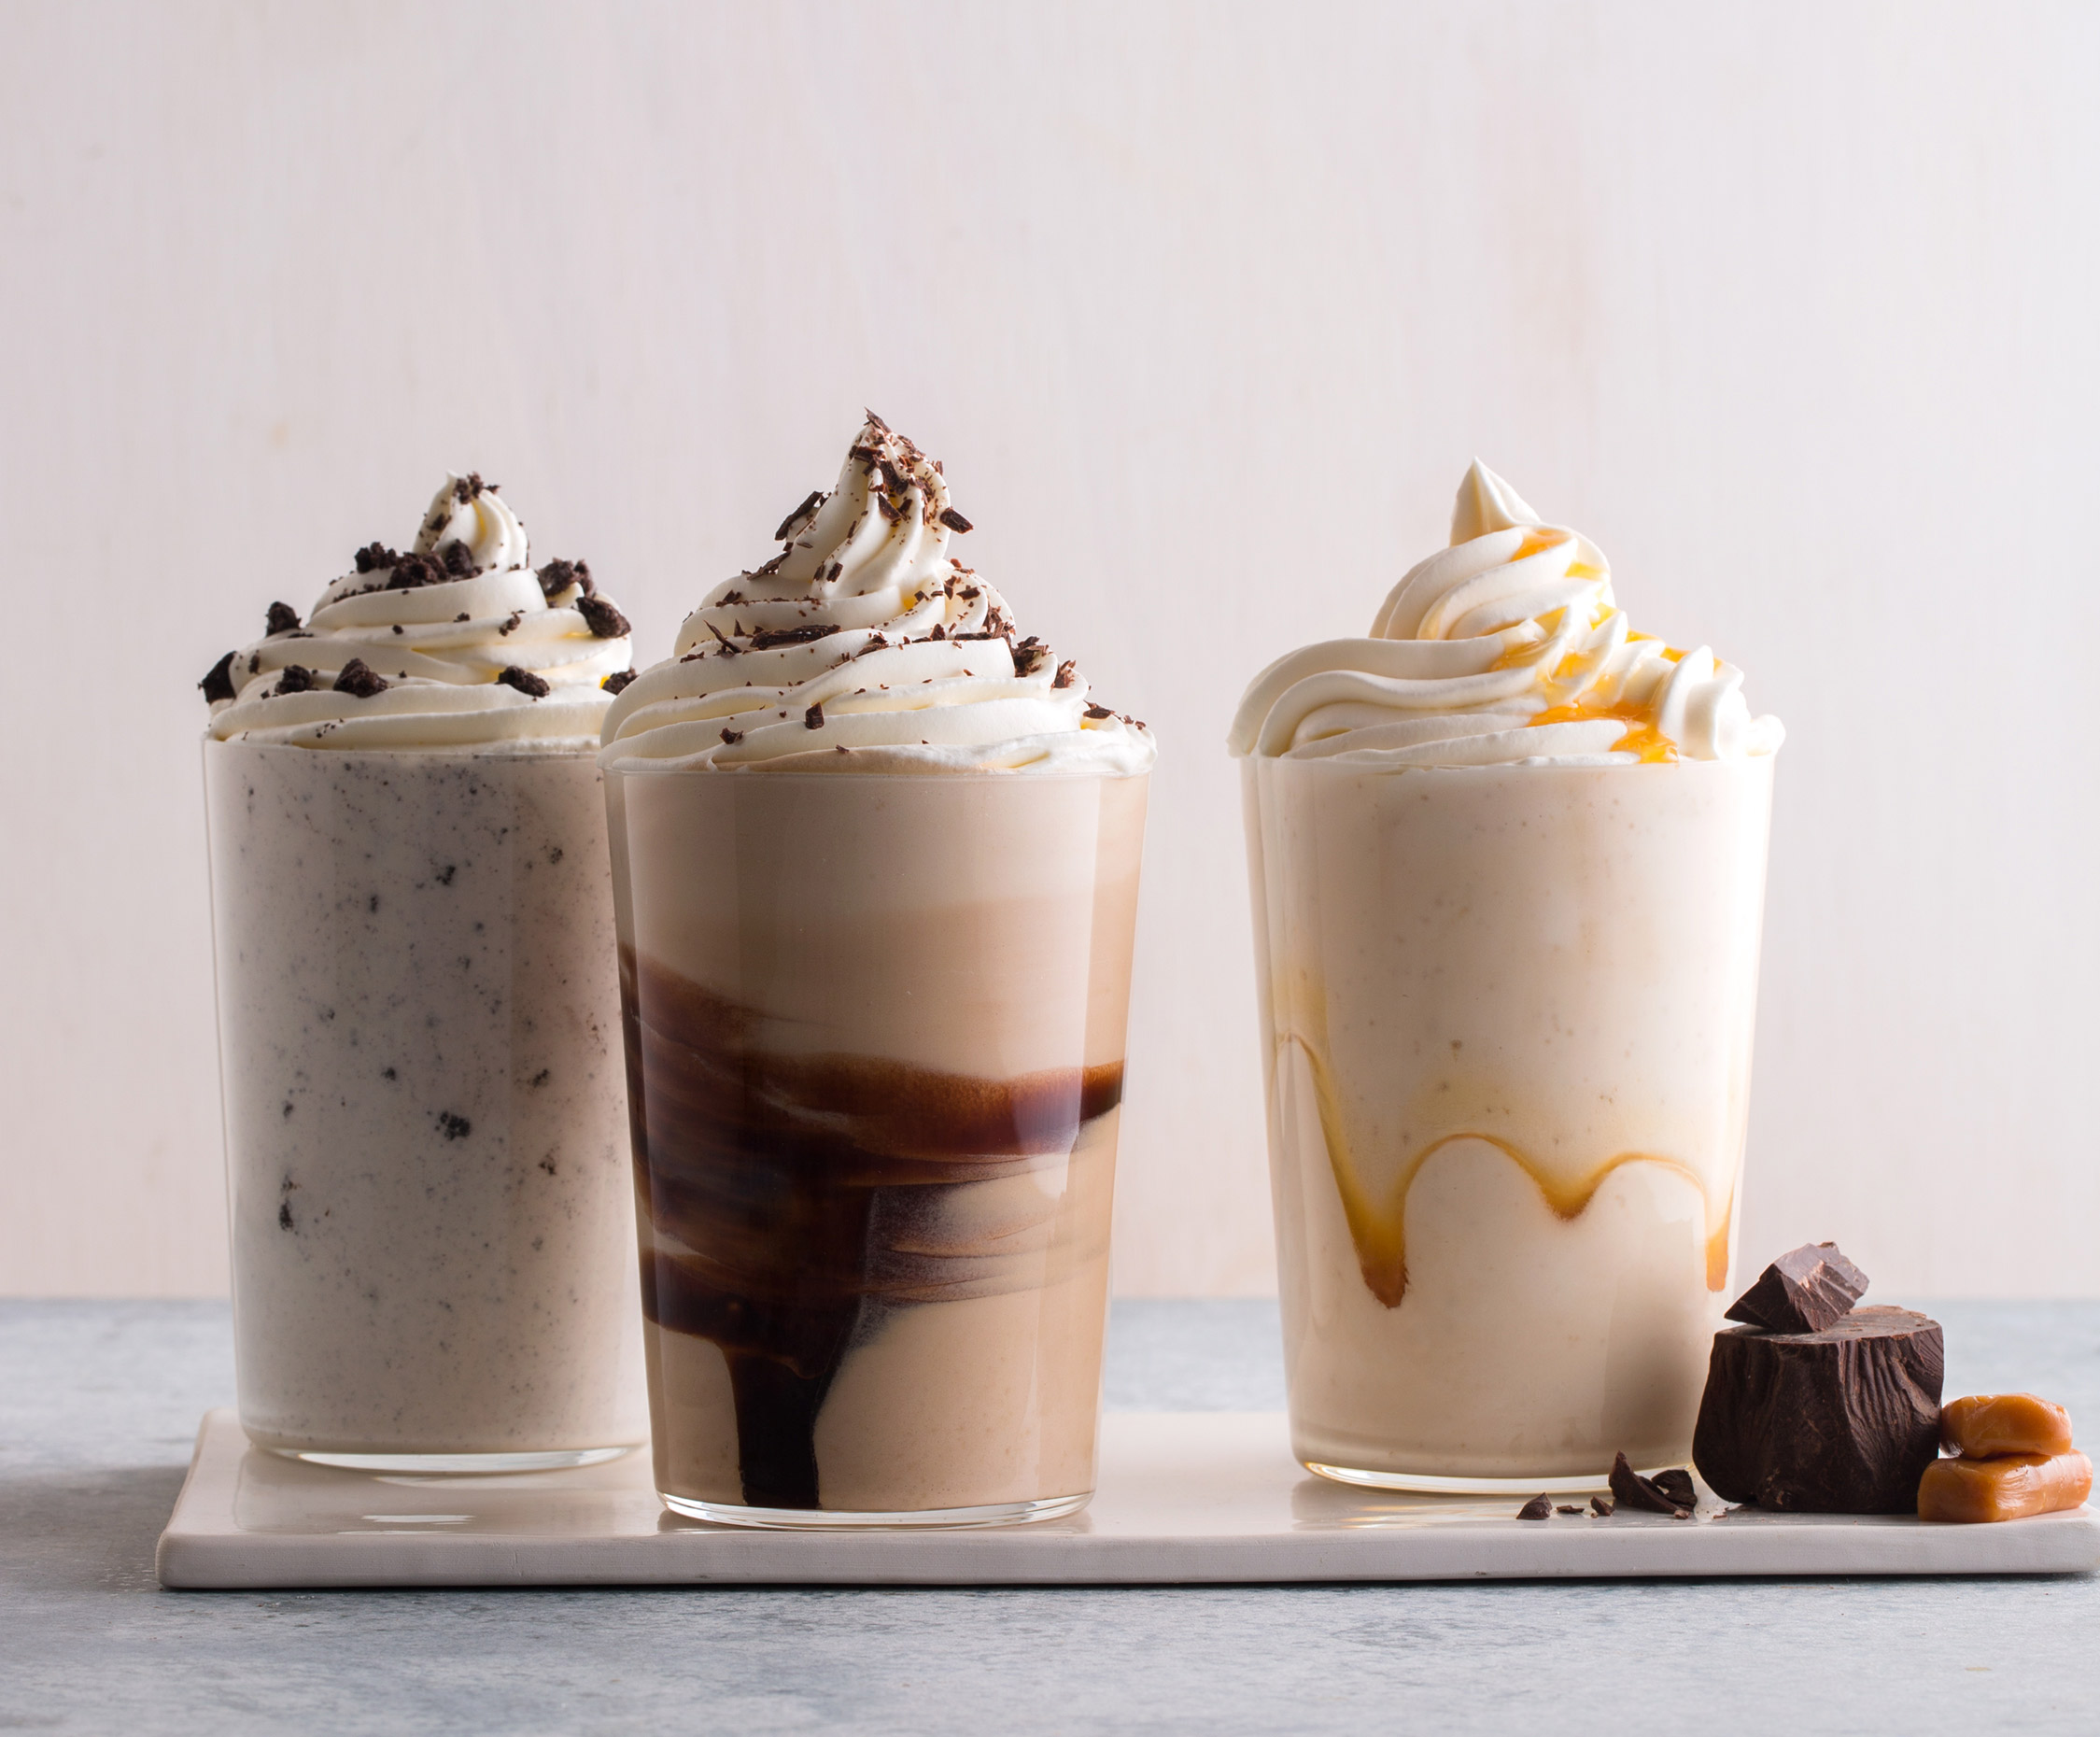 Milkshakes by Teri Lyn Fisher a commerical food photographer